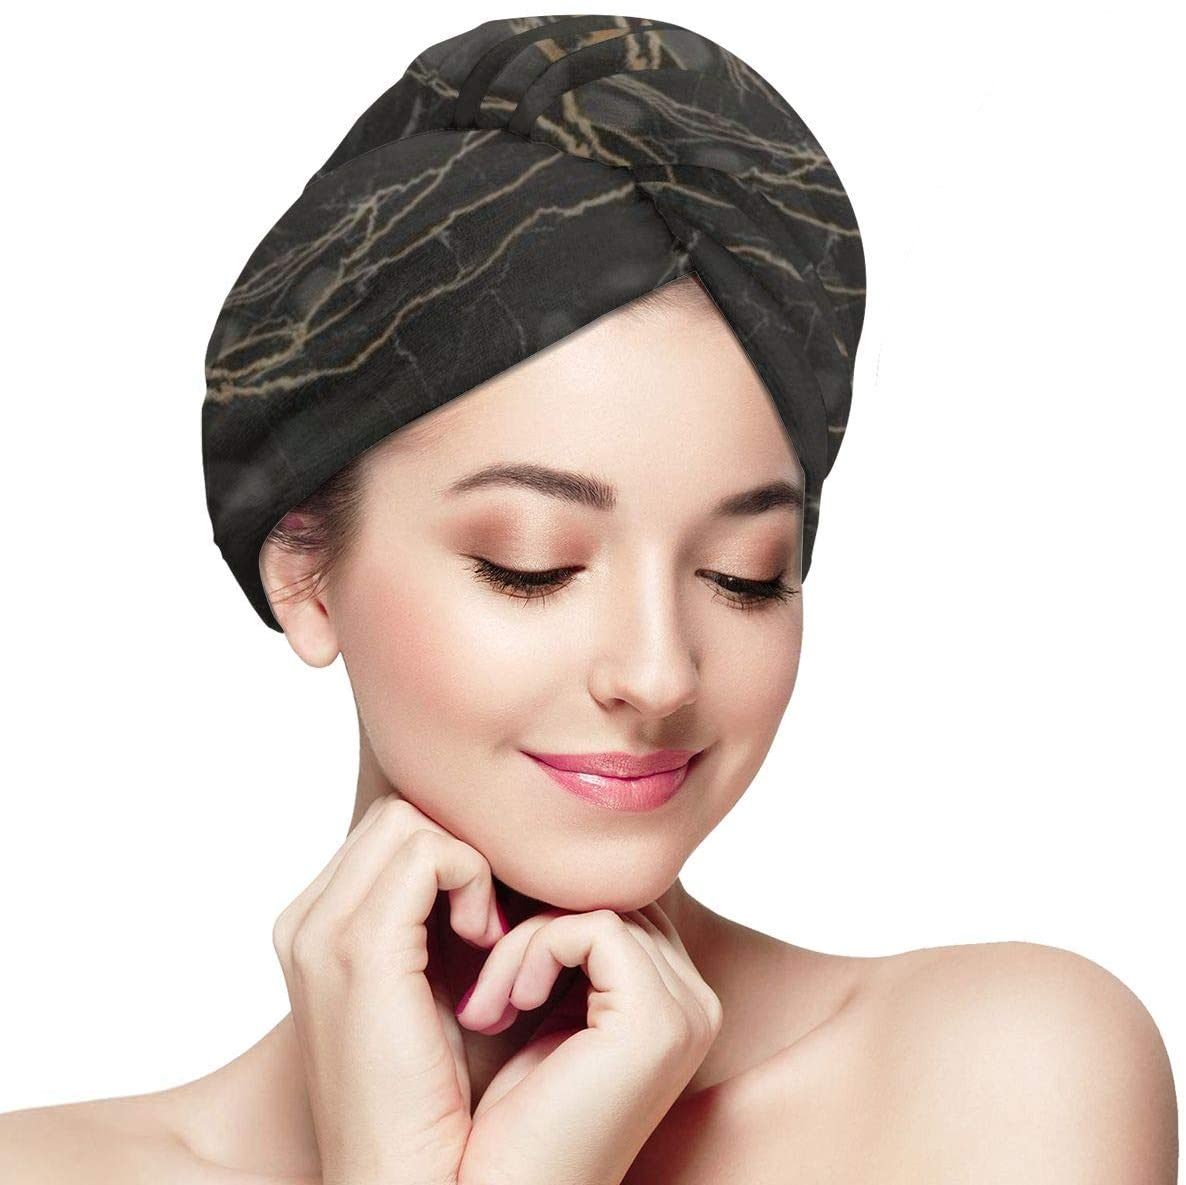 NiYoung Women & Girls Black Marble Hair Towel Wrap Ultra Absorbent Fast Dry Bathing Wrapped Cap Anti Frizz Shower Hair Turban for Drying Curly Long & Thick Hair